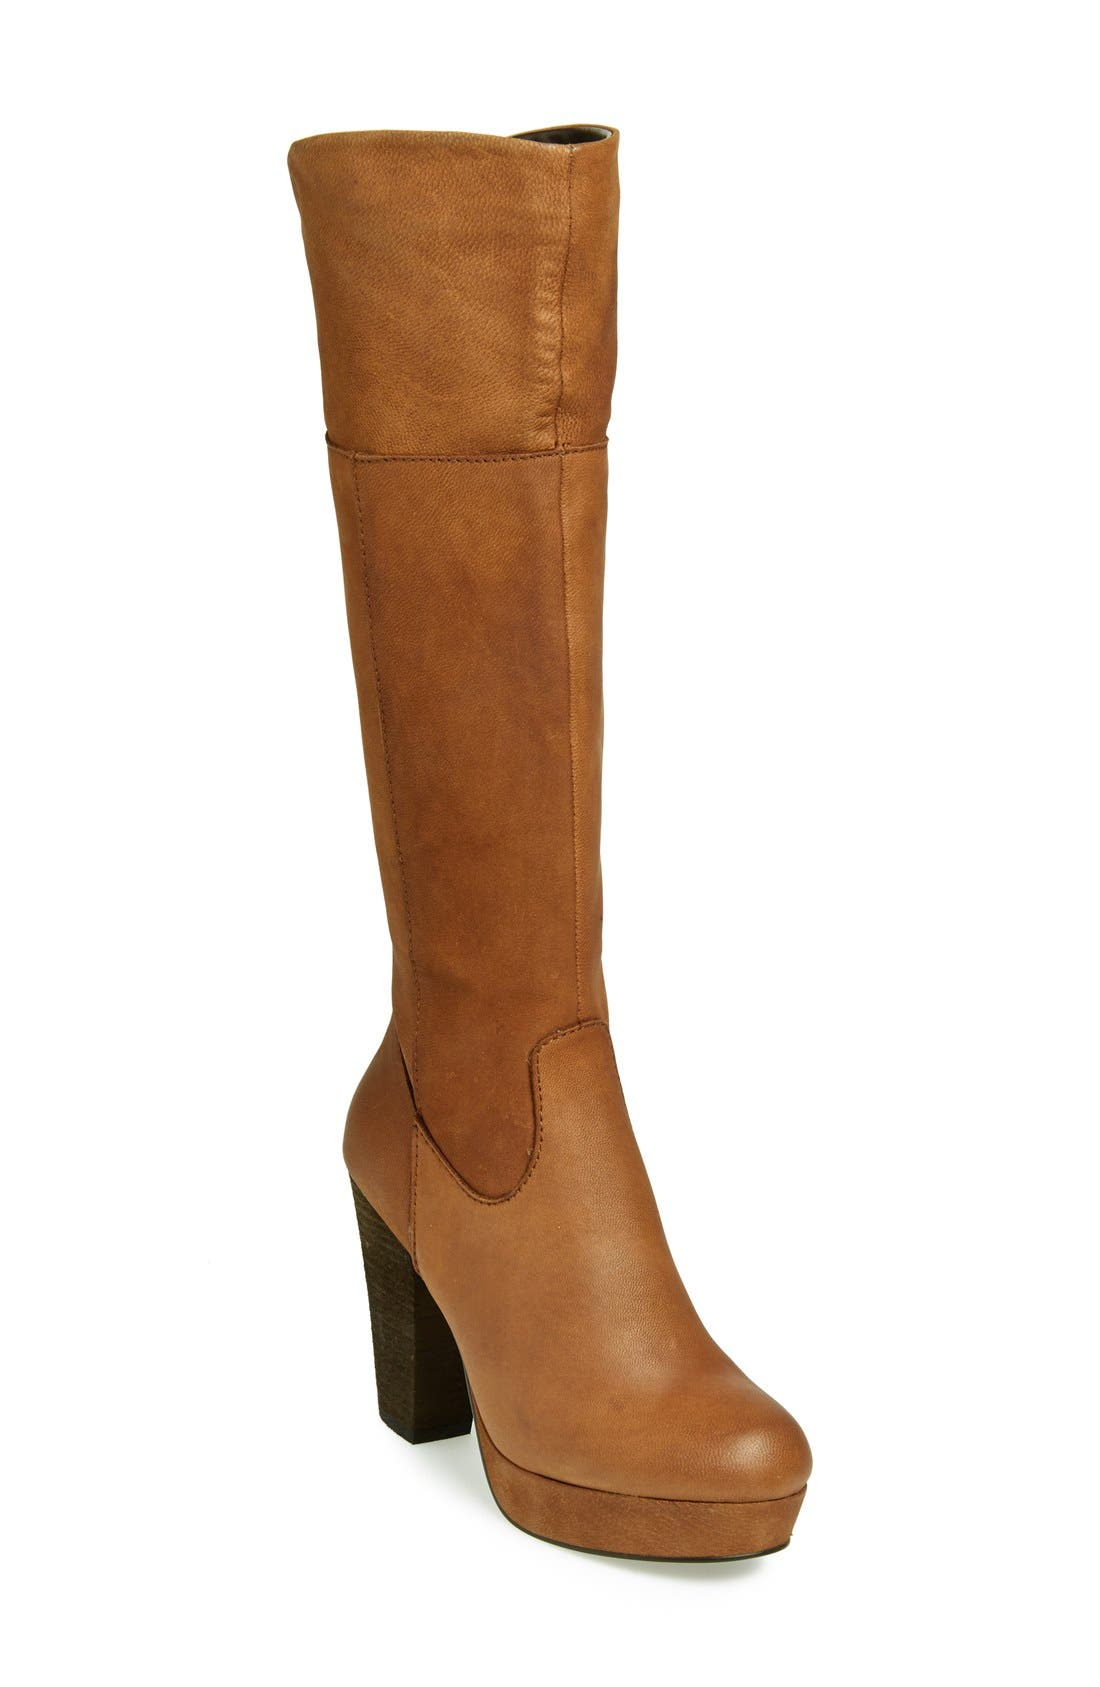 Main Image - Steve Madden 'Rackey' Leather Platform Boot (Women)